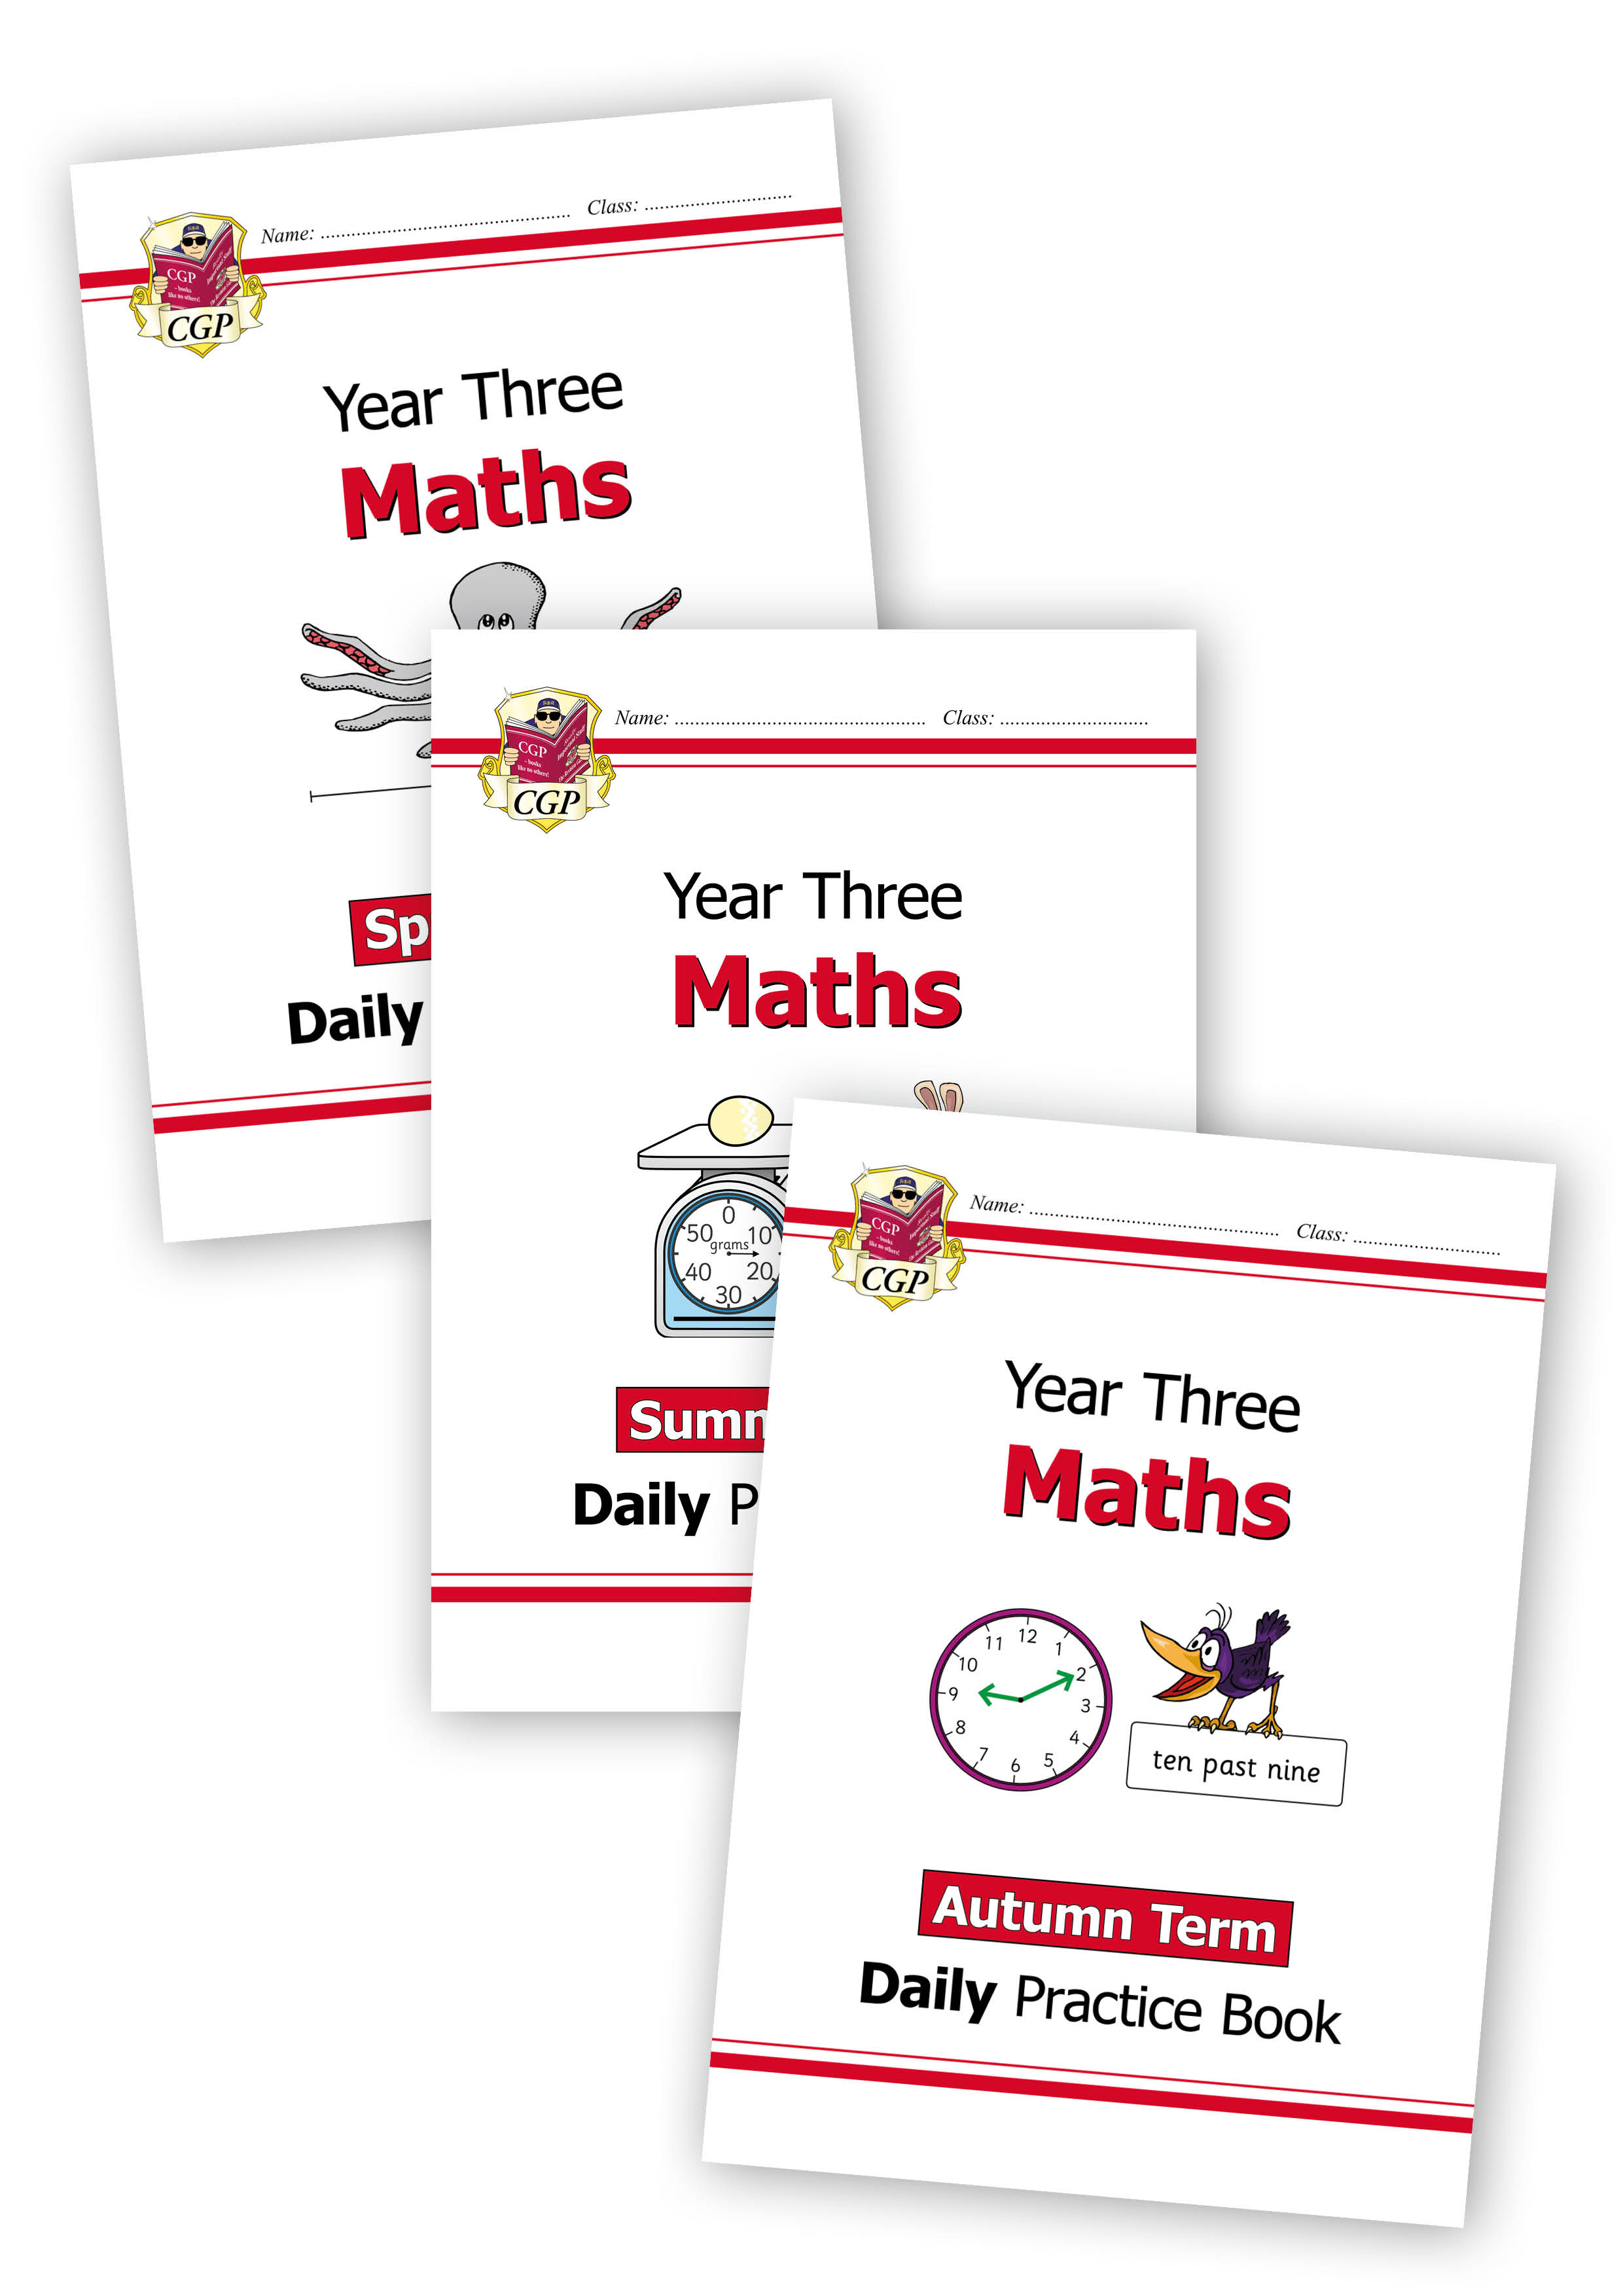 M3WB21 - New KS2 Maths Daily Practice Book Bundle: Year 3 - Autumn Term, Spring Term & Summer Term